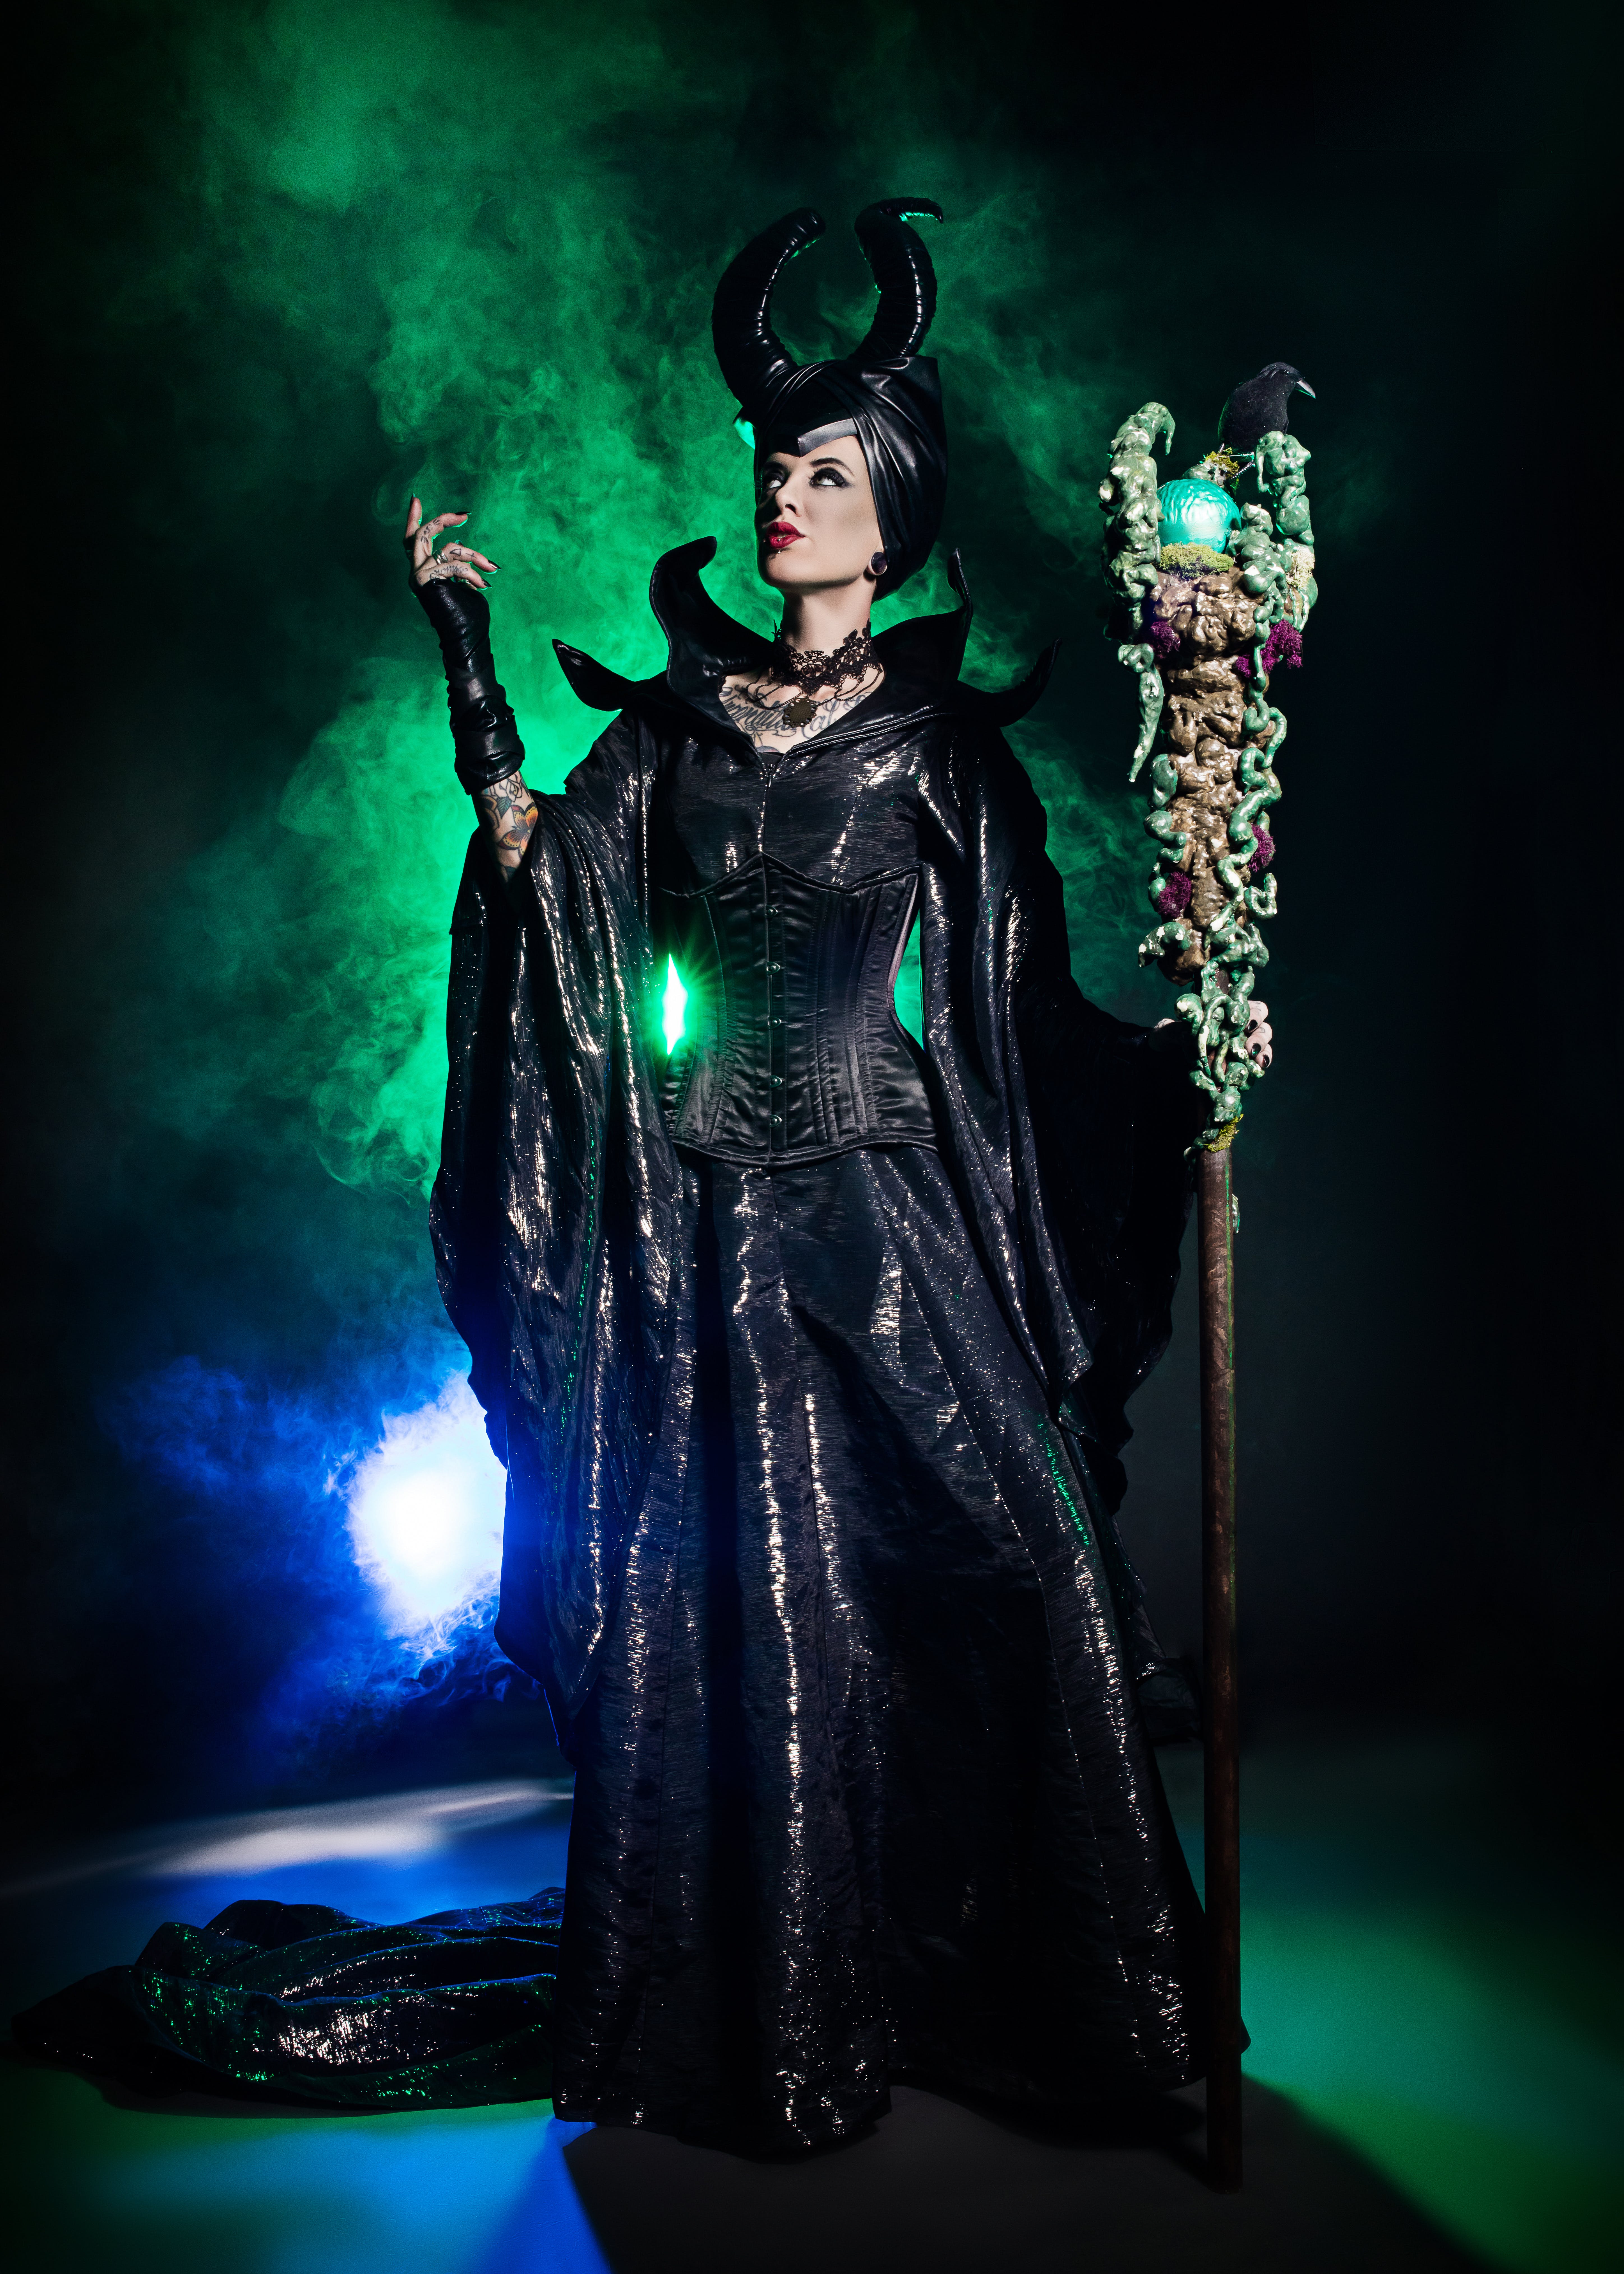 Woman Wearing Maleficent Costume